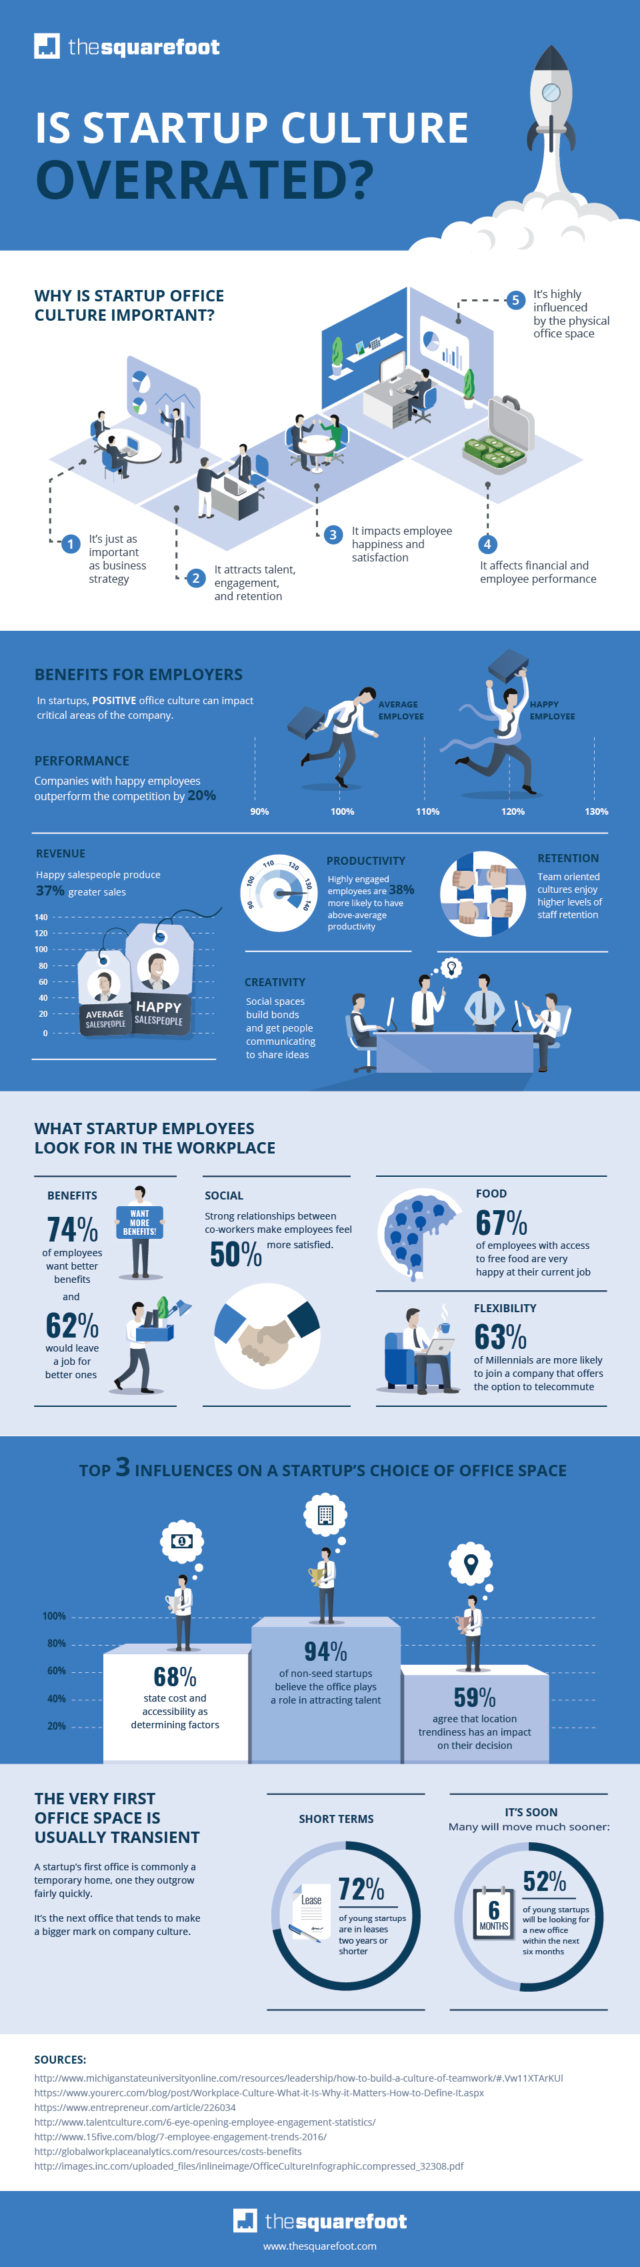 TSF-Infographic-Startup-Culture